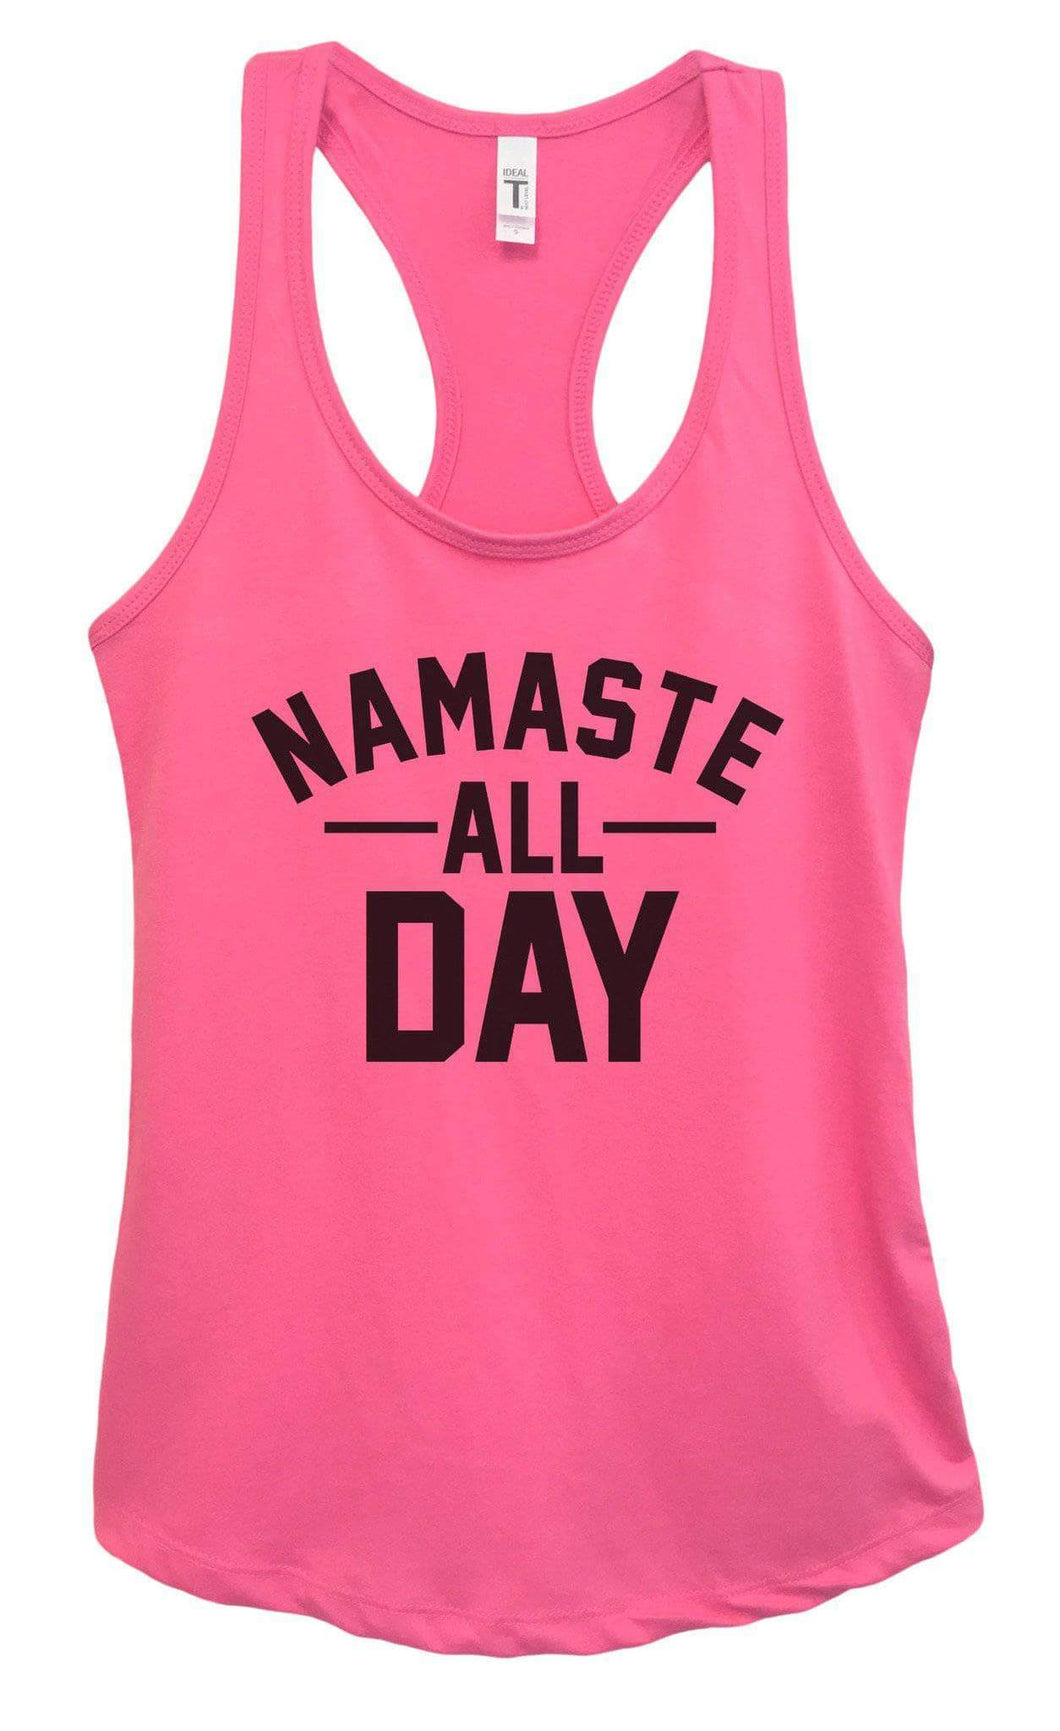 Womens NAMASTE ALL DAY Grapahic Design Fitted Tank Top Small Womens Tank Tops Fuchsia